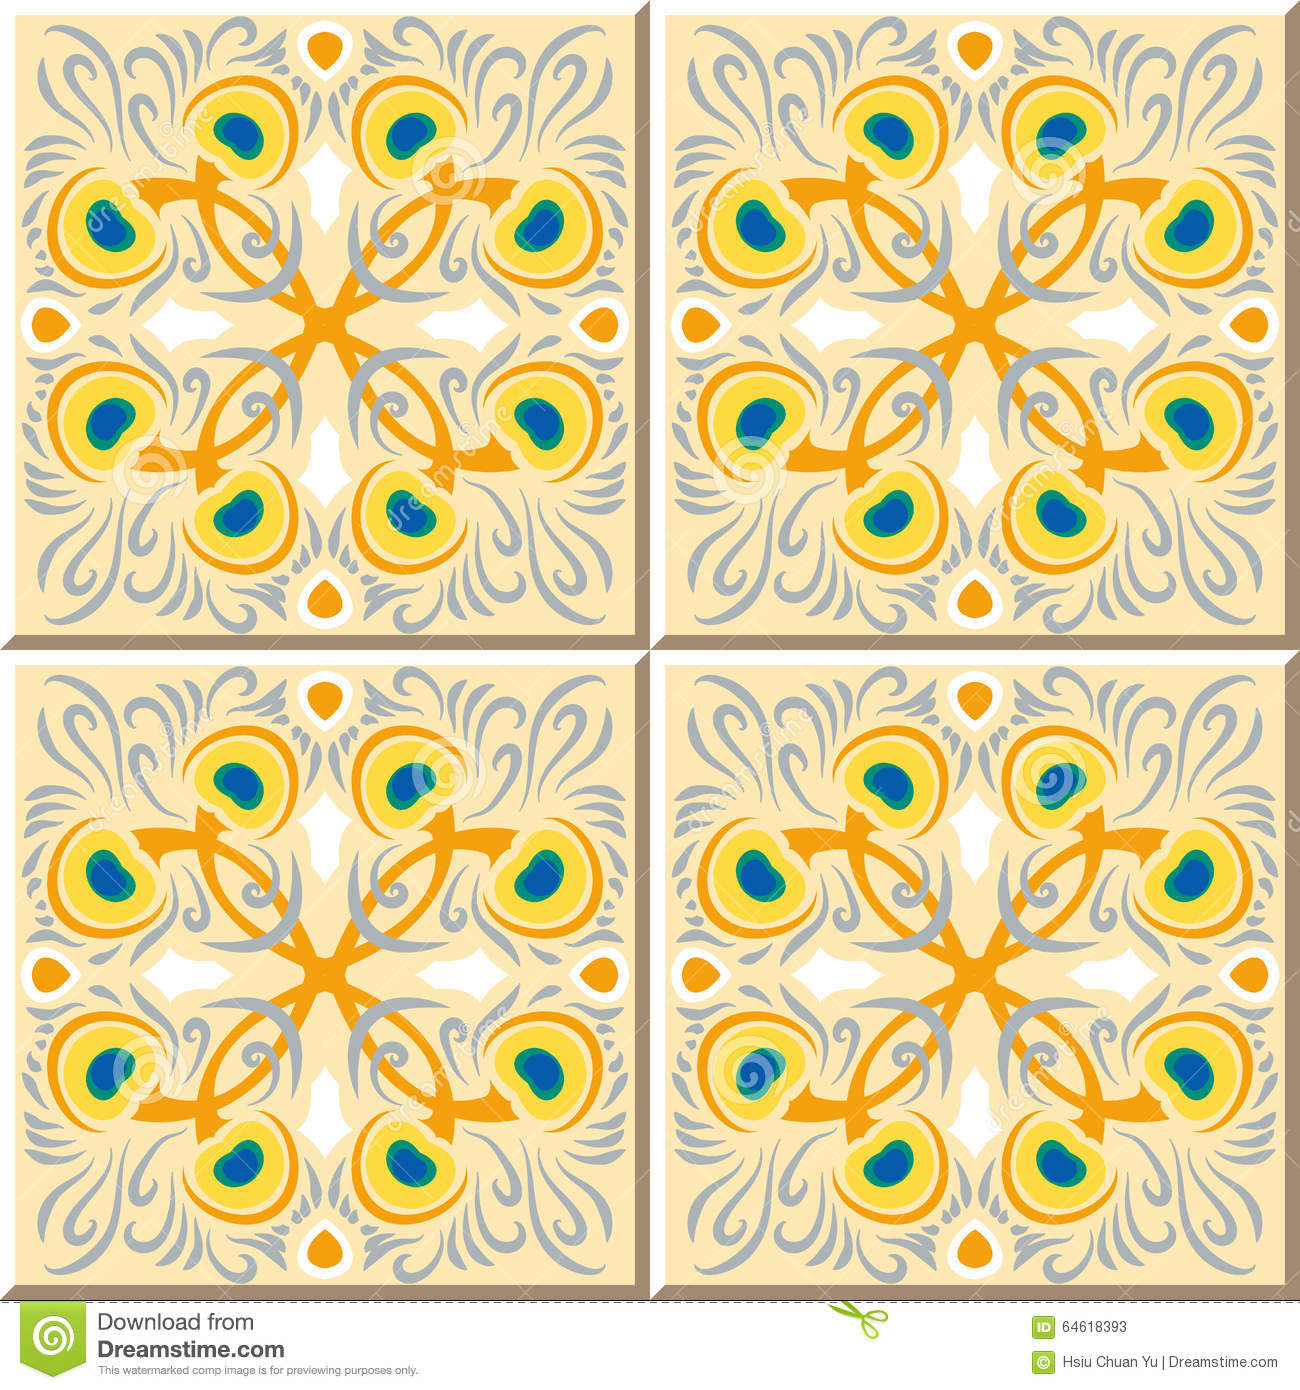 Vintage Seamless Wall Tiles Of Peacock Feather. Moroccan, Portuguese ...